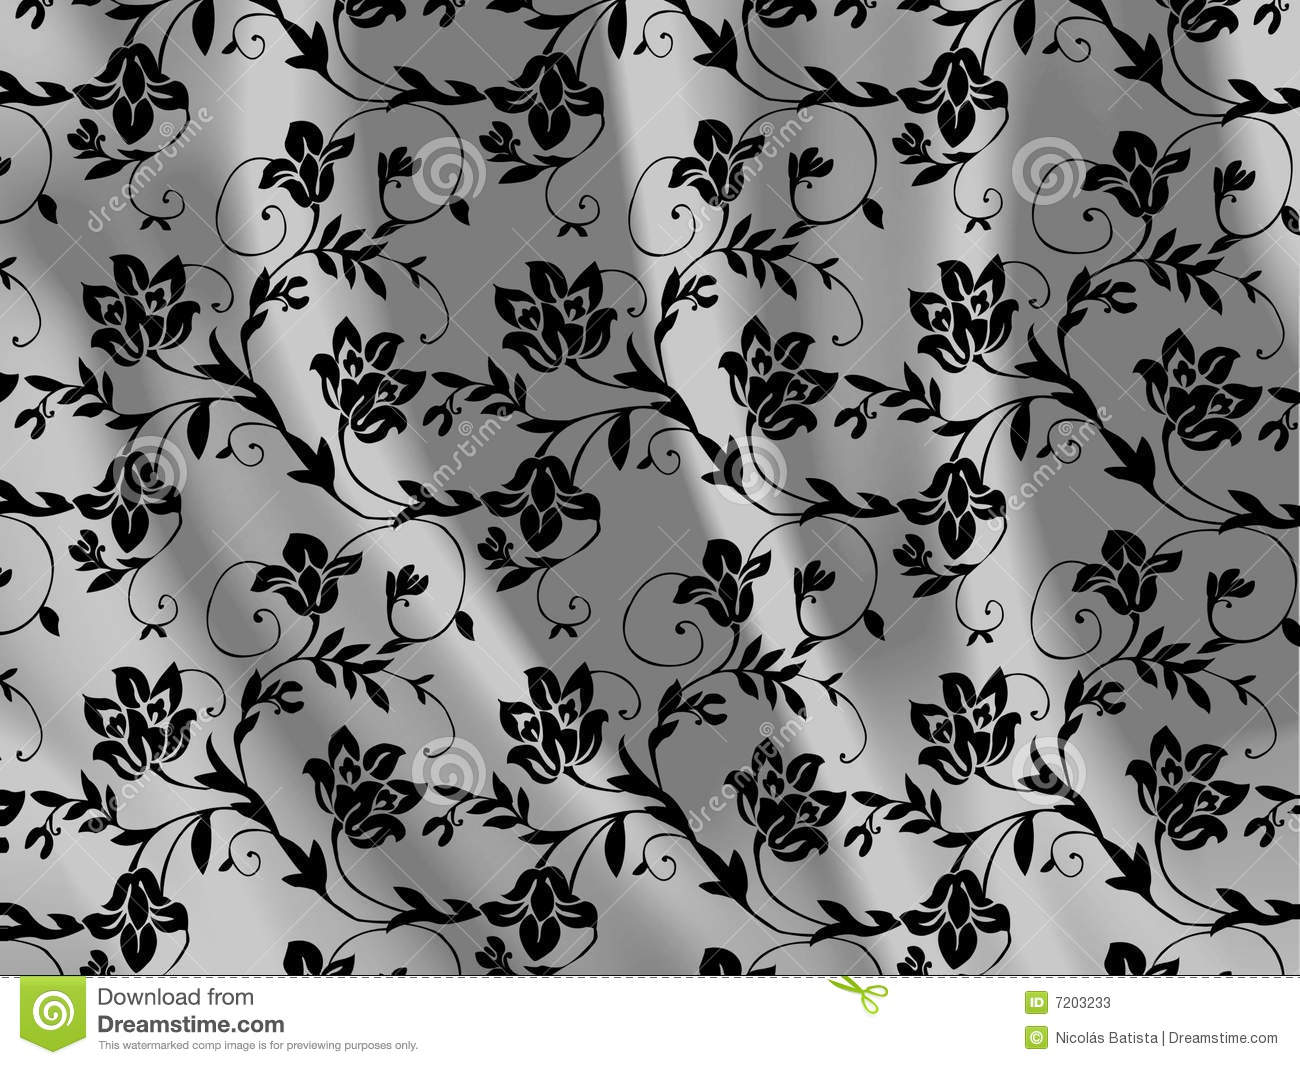 Floral fabric texture stock illustrations 266442 floral fabric floral fabric texture stock illustrations 266442 floral fabric texture stock illustrations vectors clipart dreamstime mightylinksfo